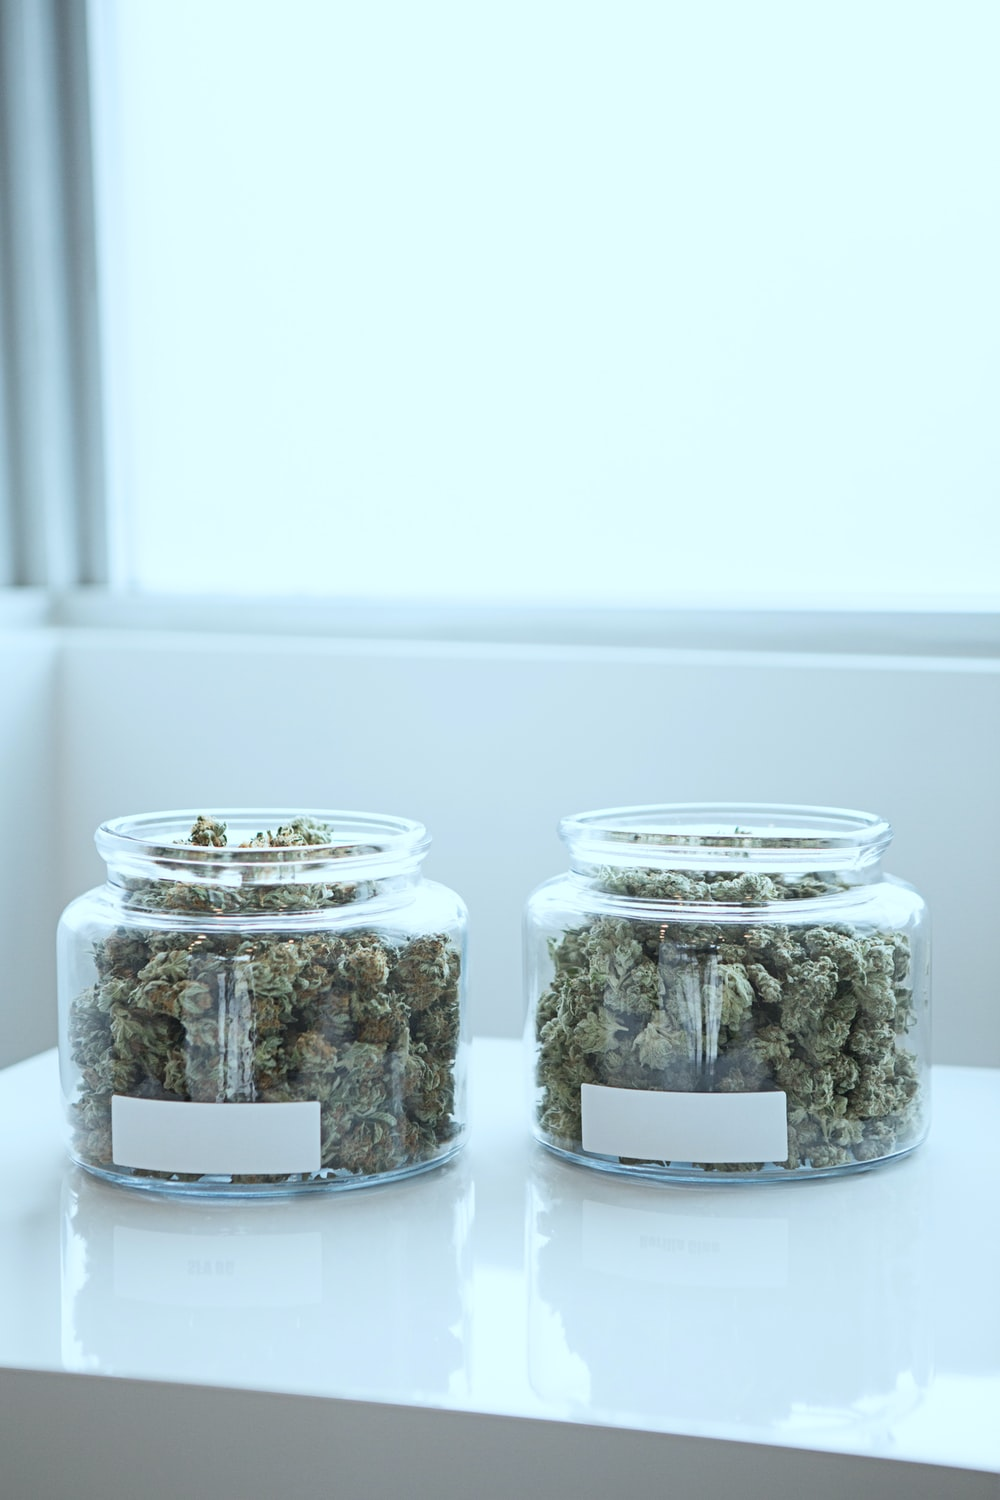 full of kush in clear glass jars on table